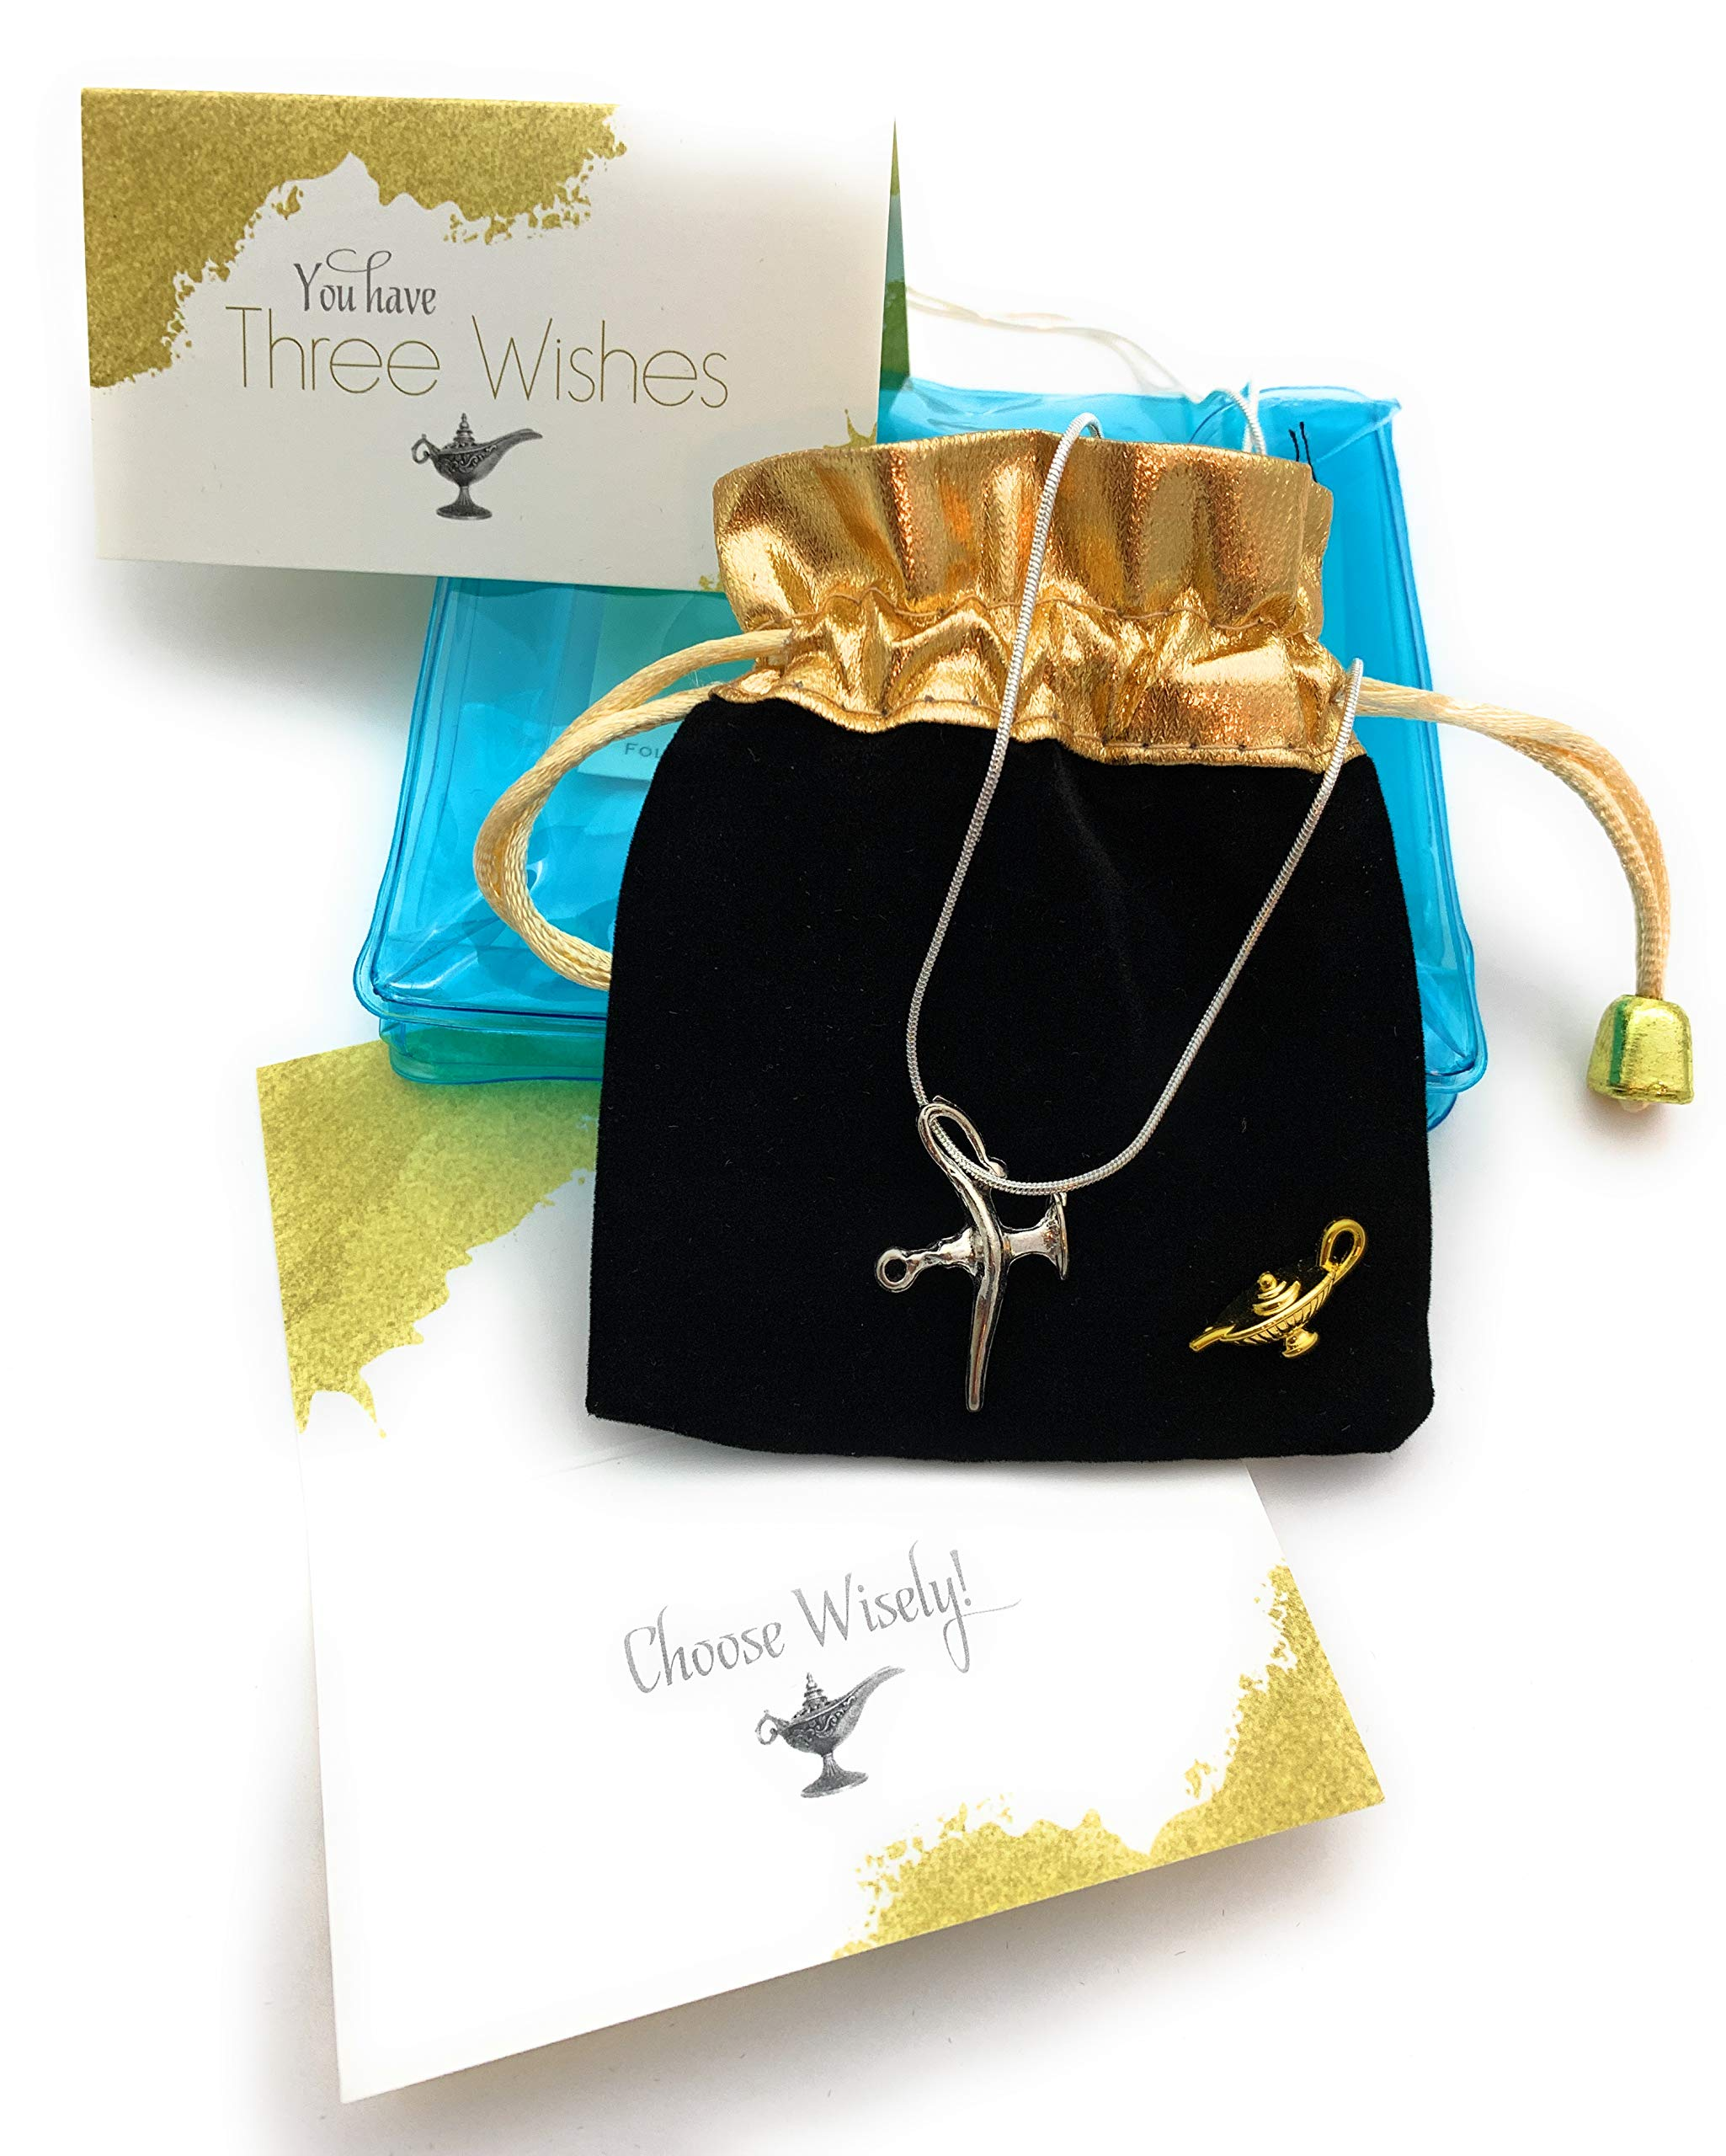 Smiling Wisdom - You Have 3 Wishes Gift Set - 2 Magic Lantern Pendants - Genie Fortune Teller Aladdin Lamp Necklace - For Children, Tween, Teens, Boys, Girls - 1 Silver and 1 Gold - New